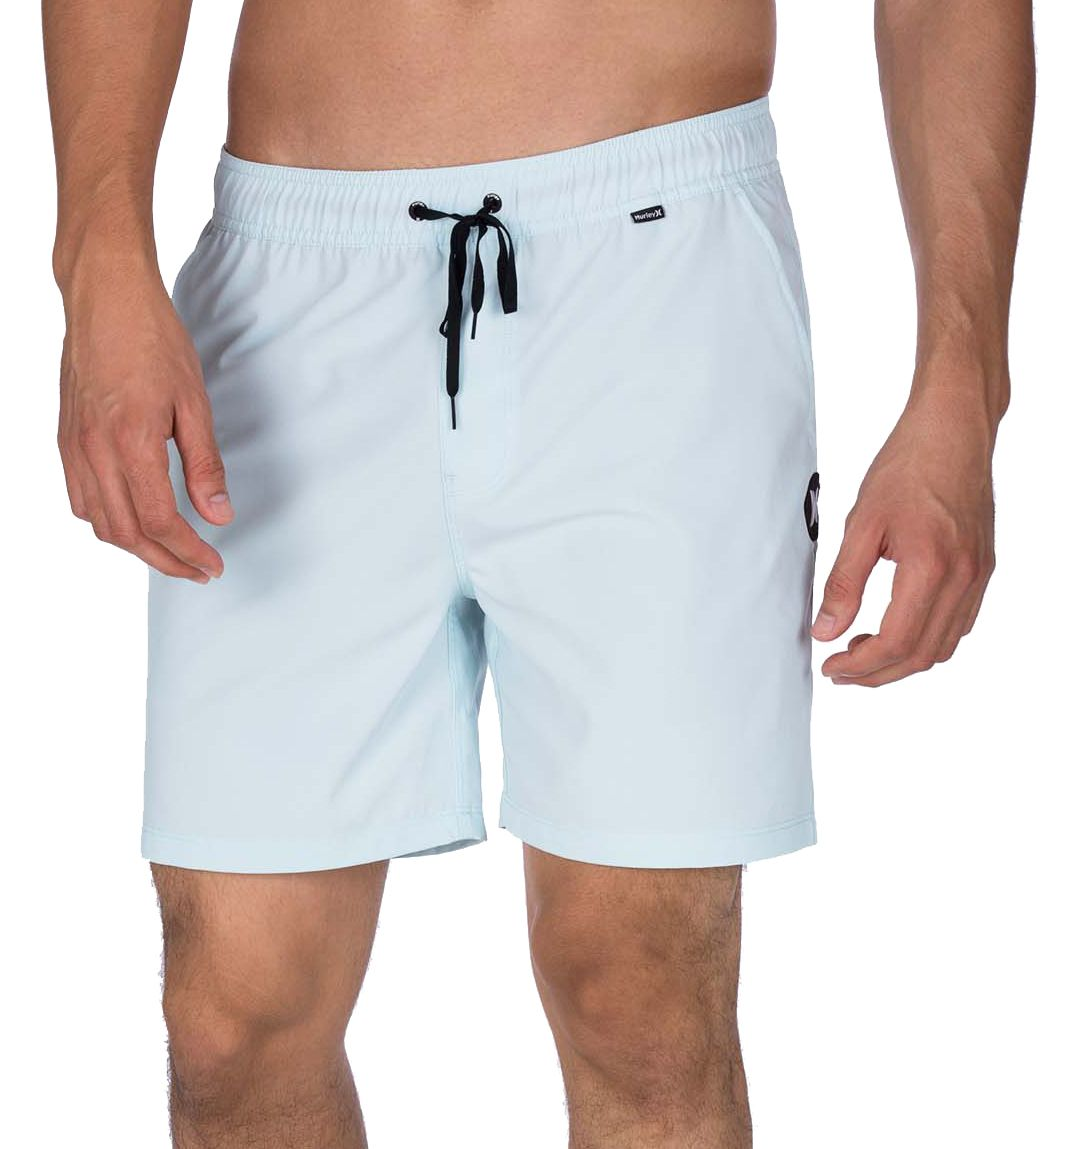 """3a69fcad91c0c7 Hurley Men's O&O Volley 17"""" Board Shorts   DICK'S Sporting Goods"""